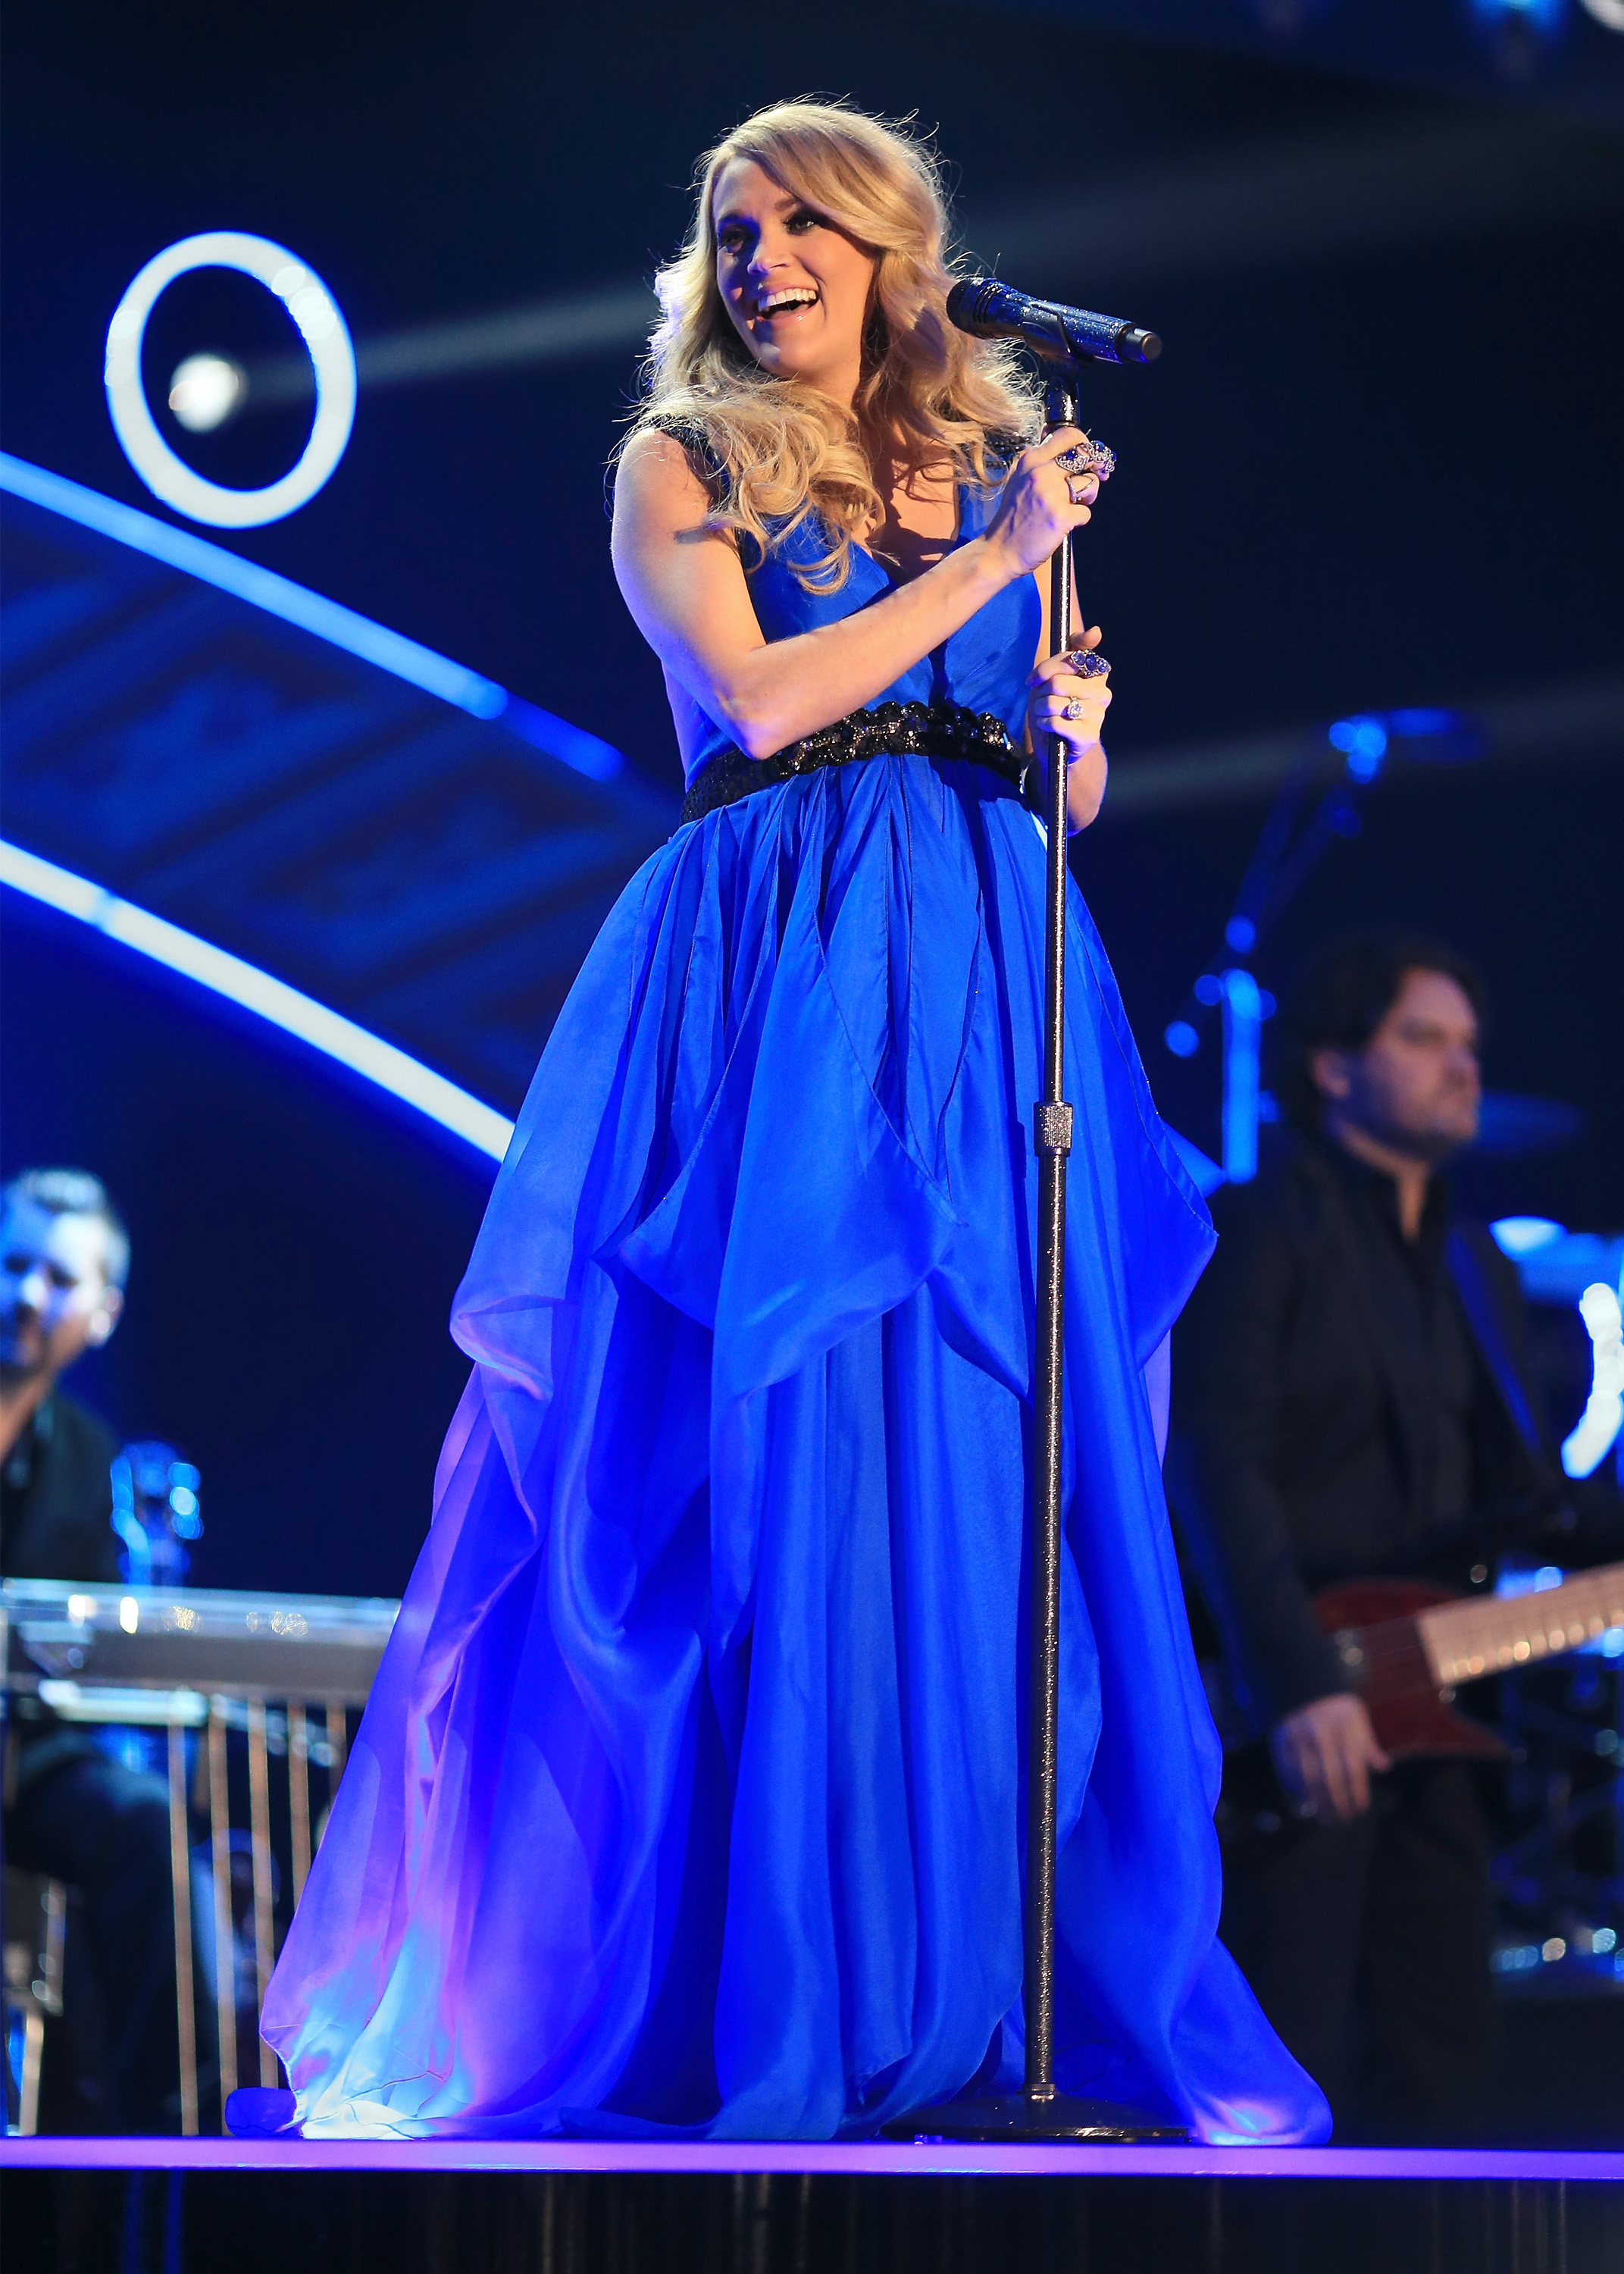 Readers' Poll: 10 Best Country Songs of 2014